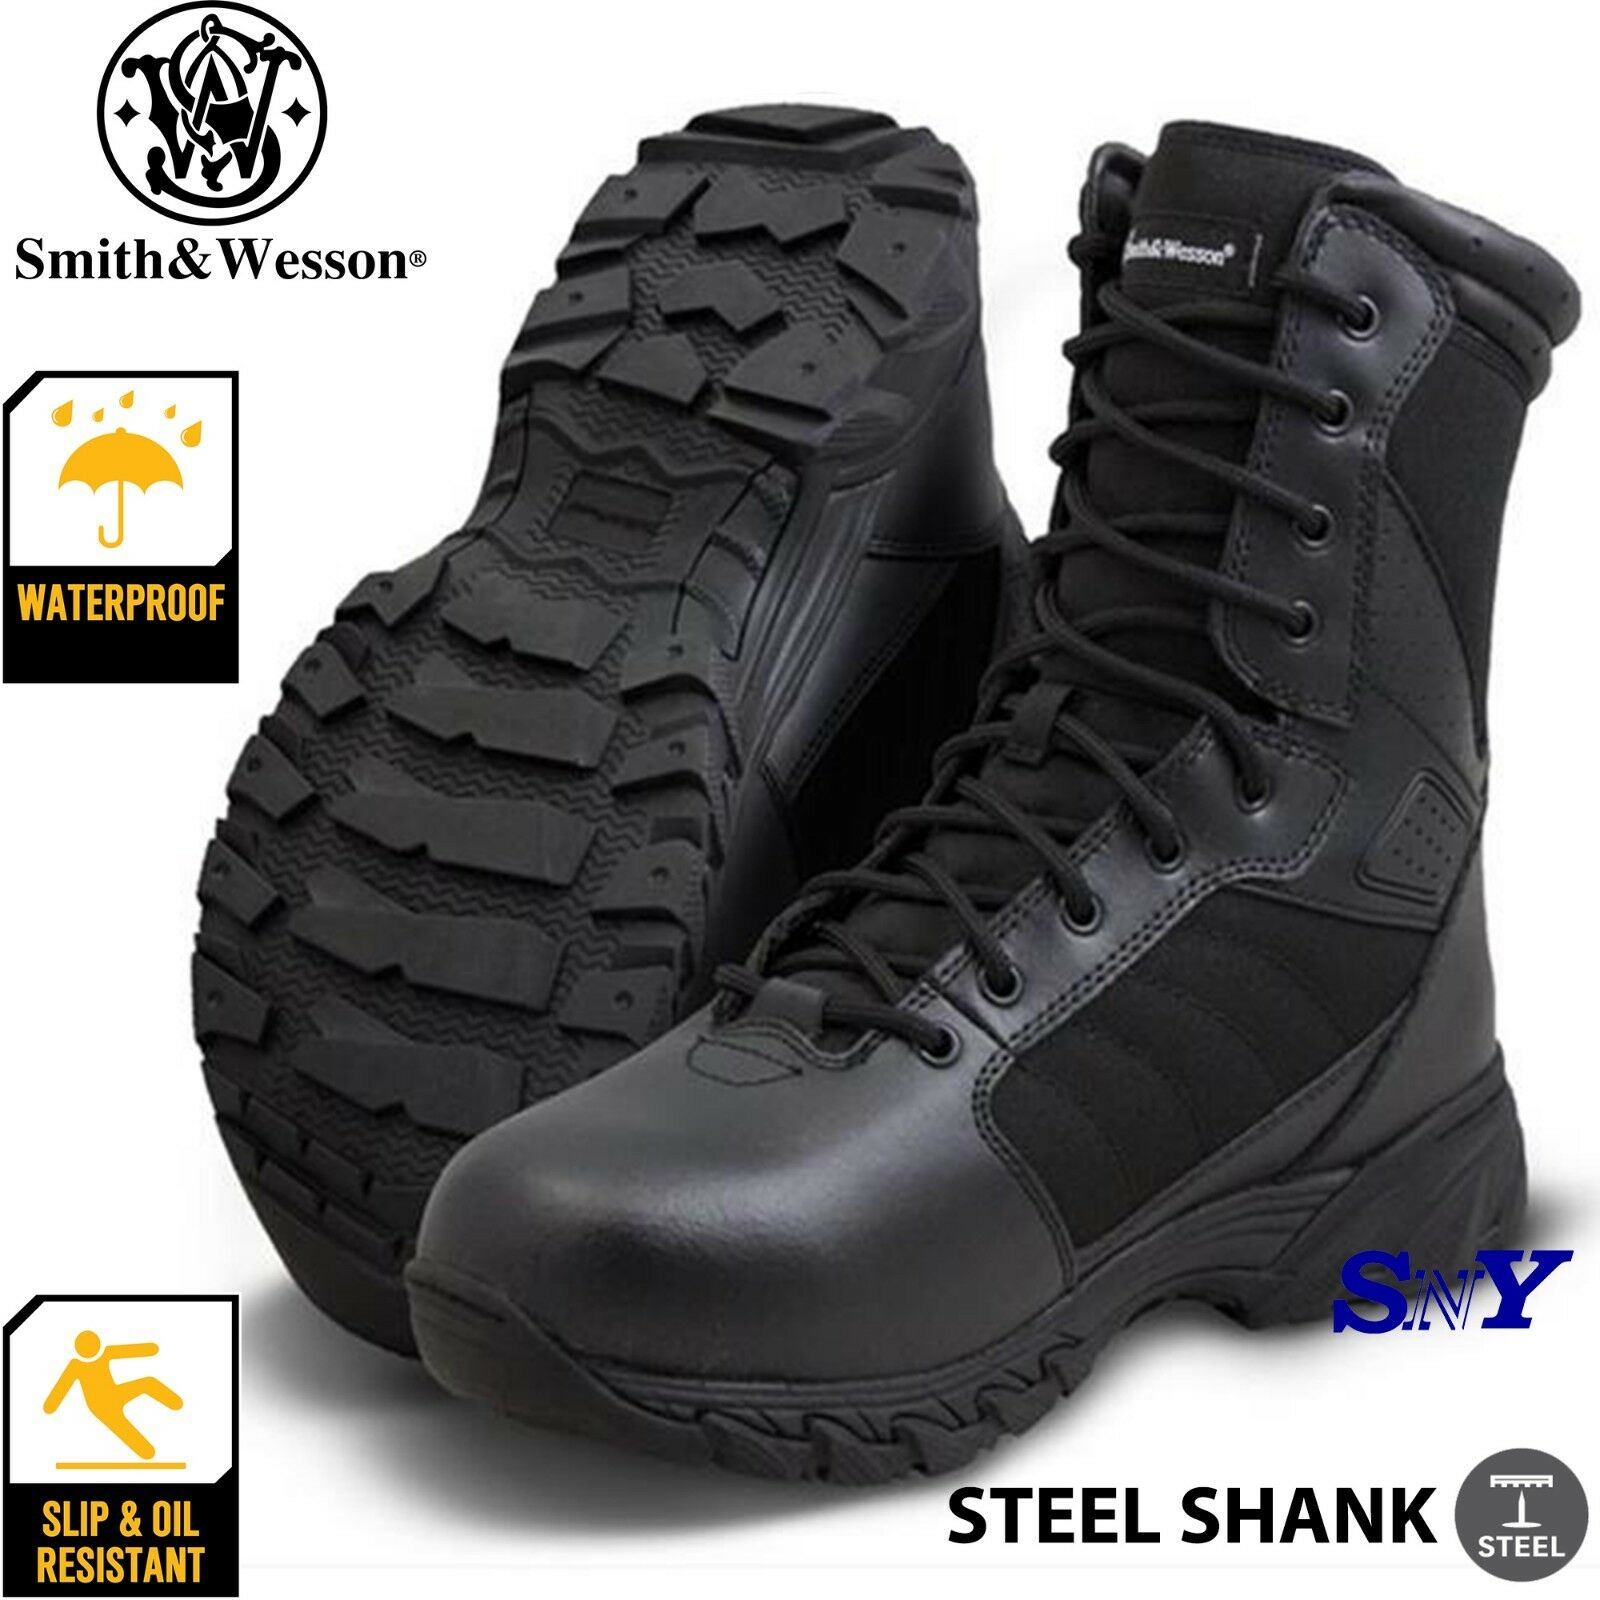 Law Enforced Police Military Tactical boots Waterproof Slip Resistant boot tg